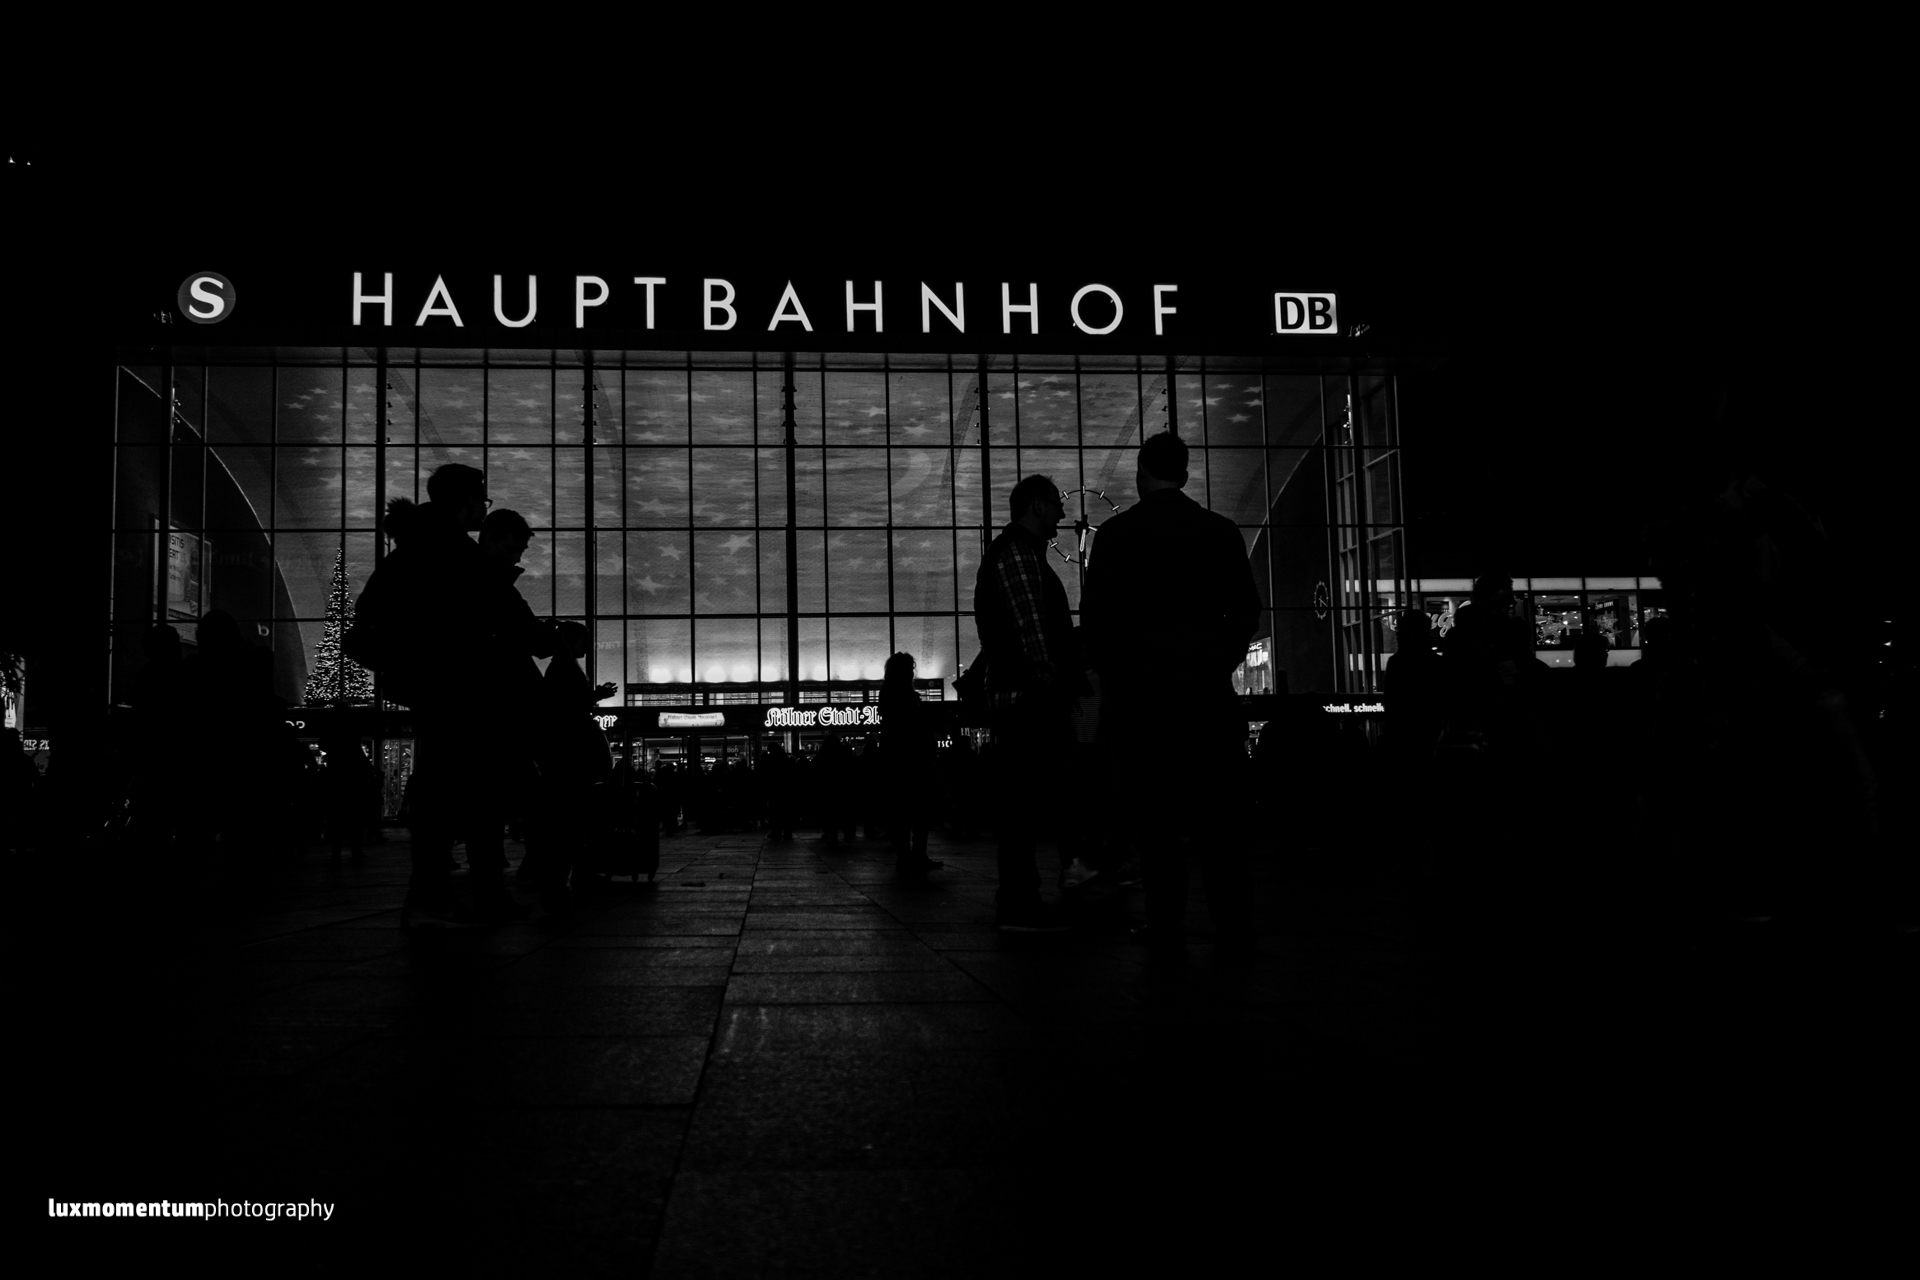 Cologne Railstation